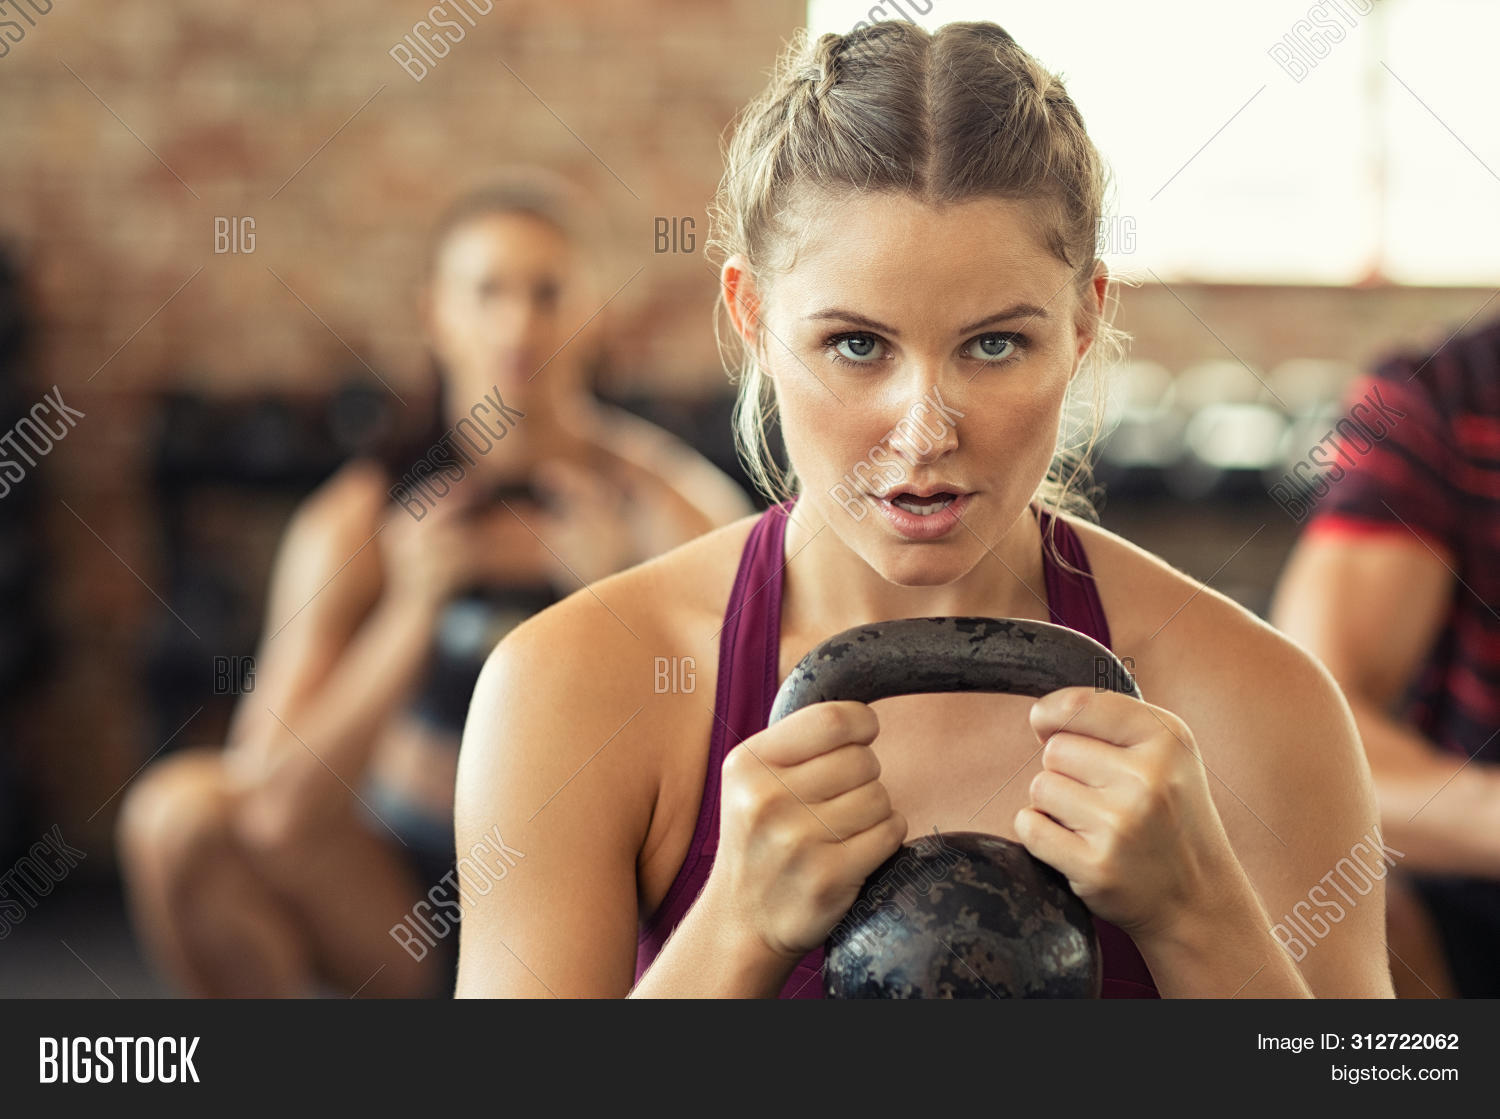 aerobic,attractive,challenge,class,closeup,dedication,determination,determination woman,determined woman,effort,endurance,exercise,face,fit,fitness,fitness girl,fitness training,focused athlete,girl,girl squat,girl squatting,group,gym,gym equipment,gym workout,healthy,heavy lifting,heavy weight,kettle,kettlebell,lifting,people,power,sport,sports,sports wear,squat,squat exercise,strength,strength training,strong,sweat,training,weight,well being,wellbeing,wellness,workout,young,young woman